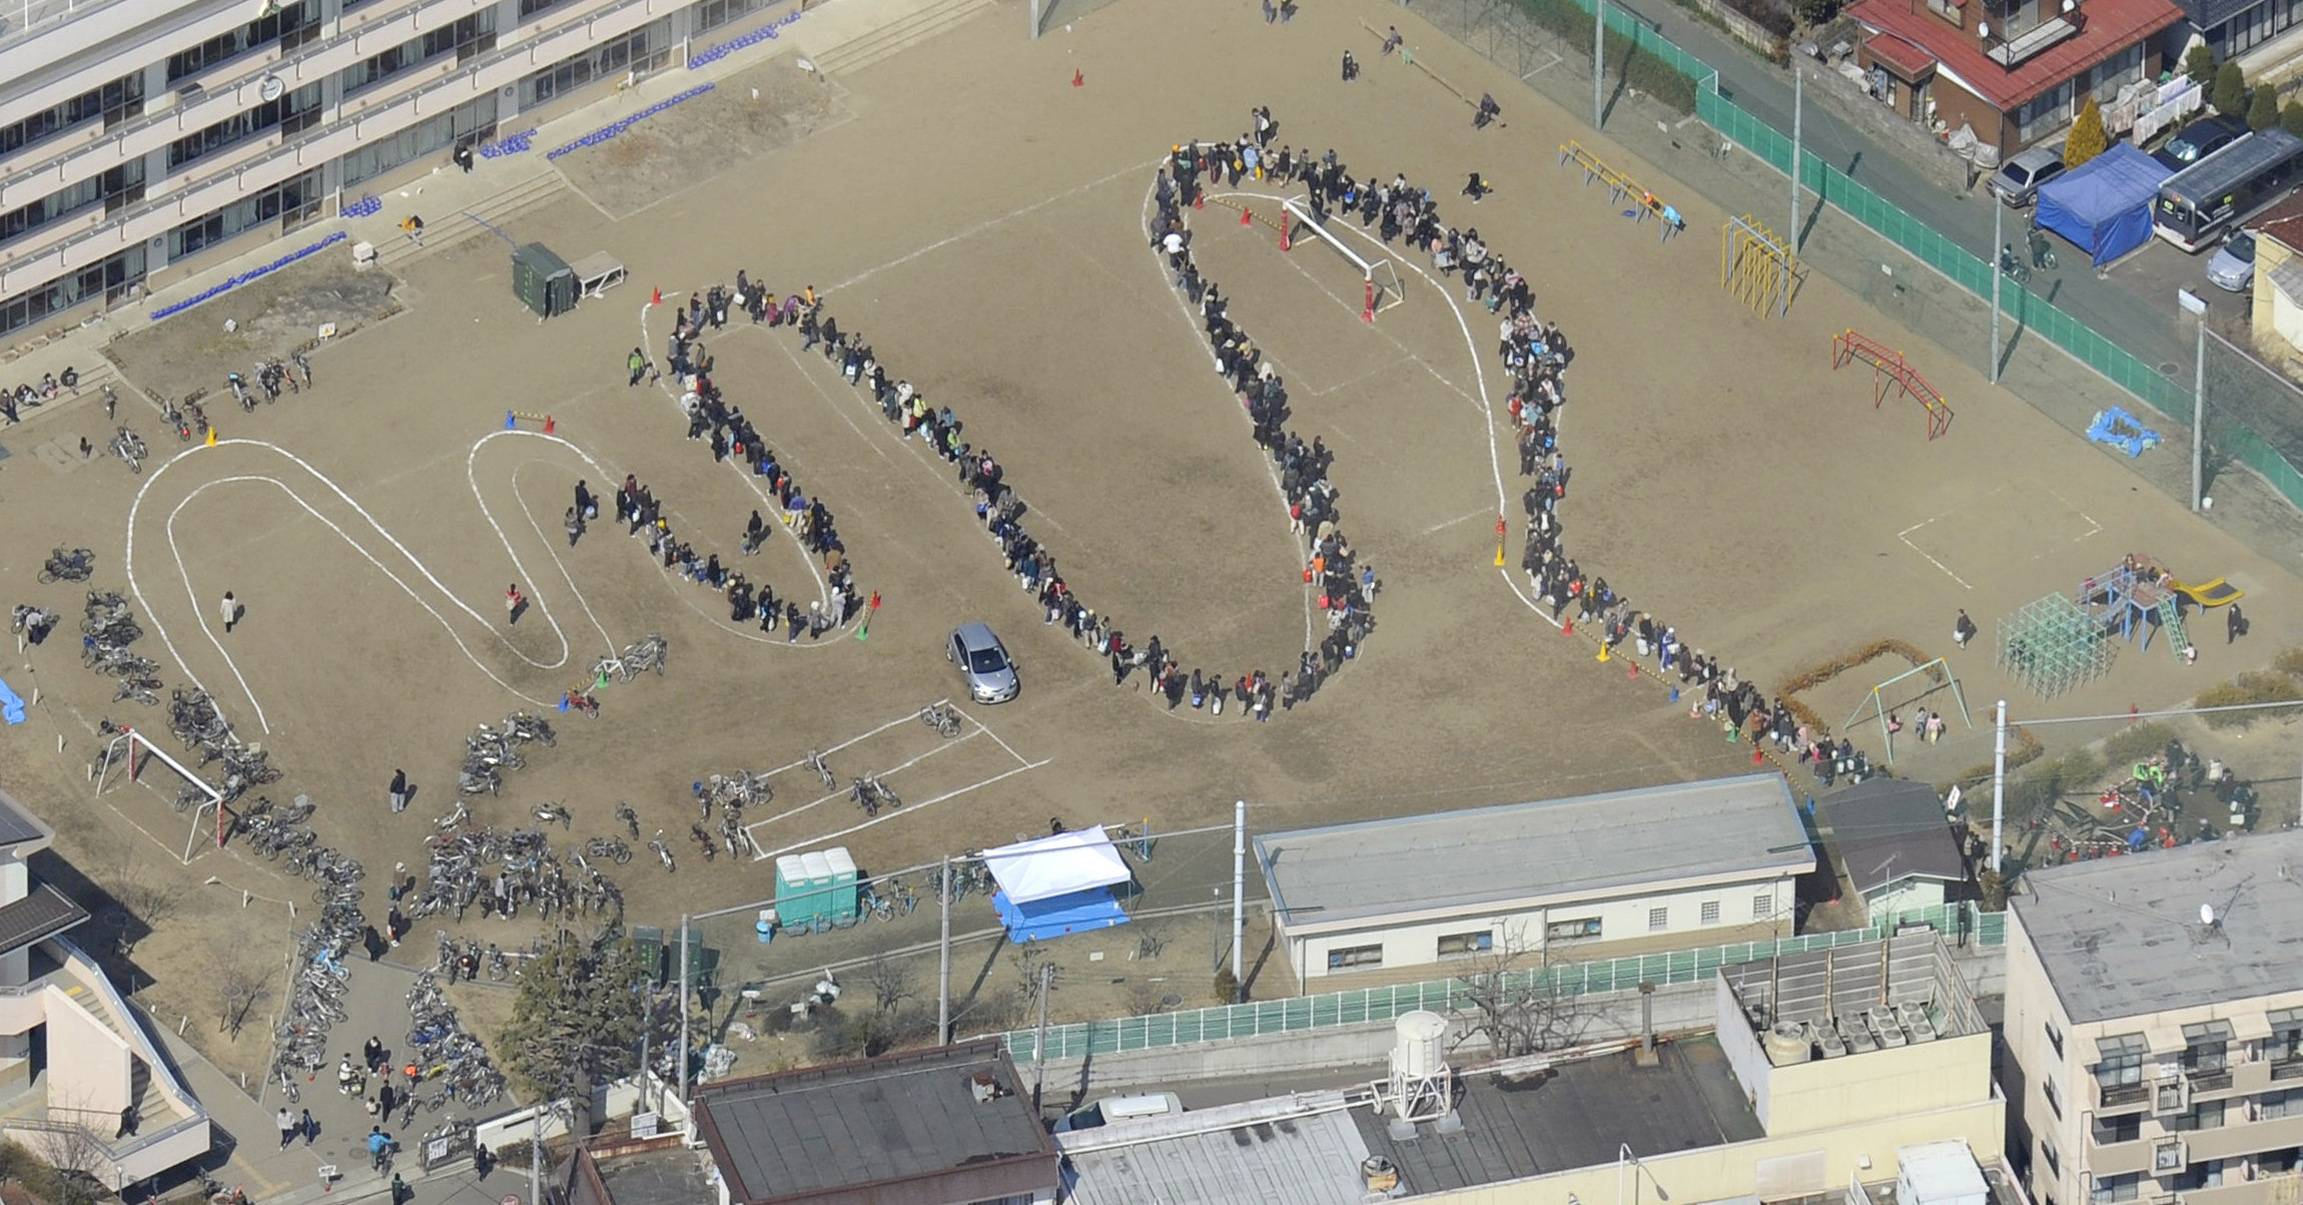 A long line of residents seeking water supply is formed on the playground of a school in Sendai, northeastern Japan, on Sunday March 13, 2011, two days after a powerful earthquake and tsunami hit the the country's northeastern coast.